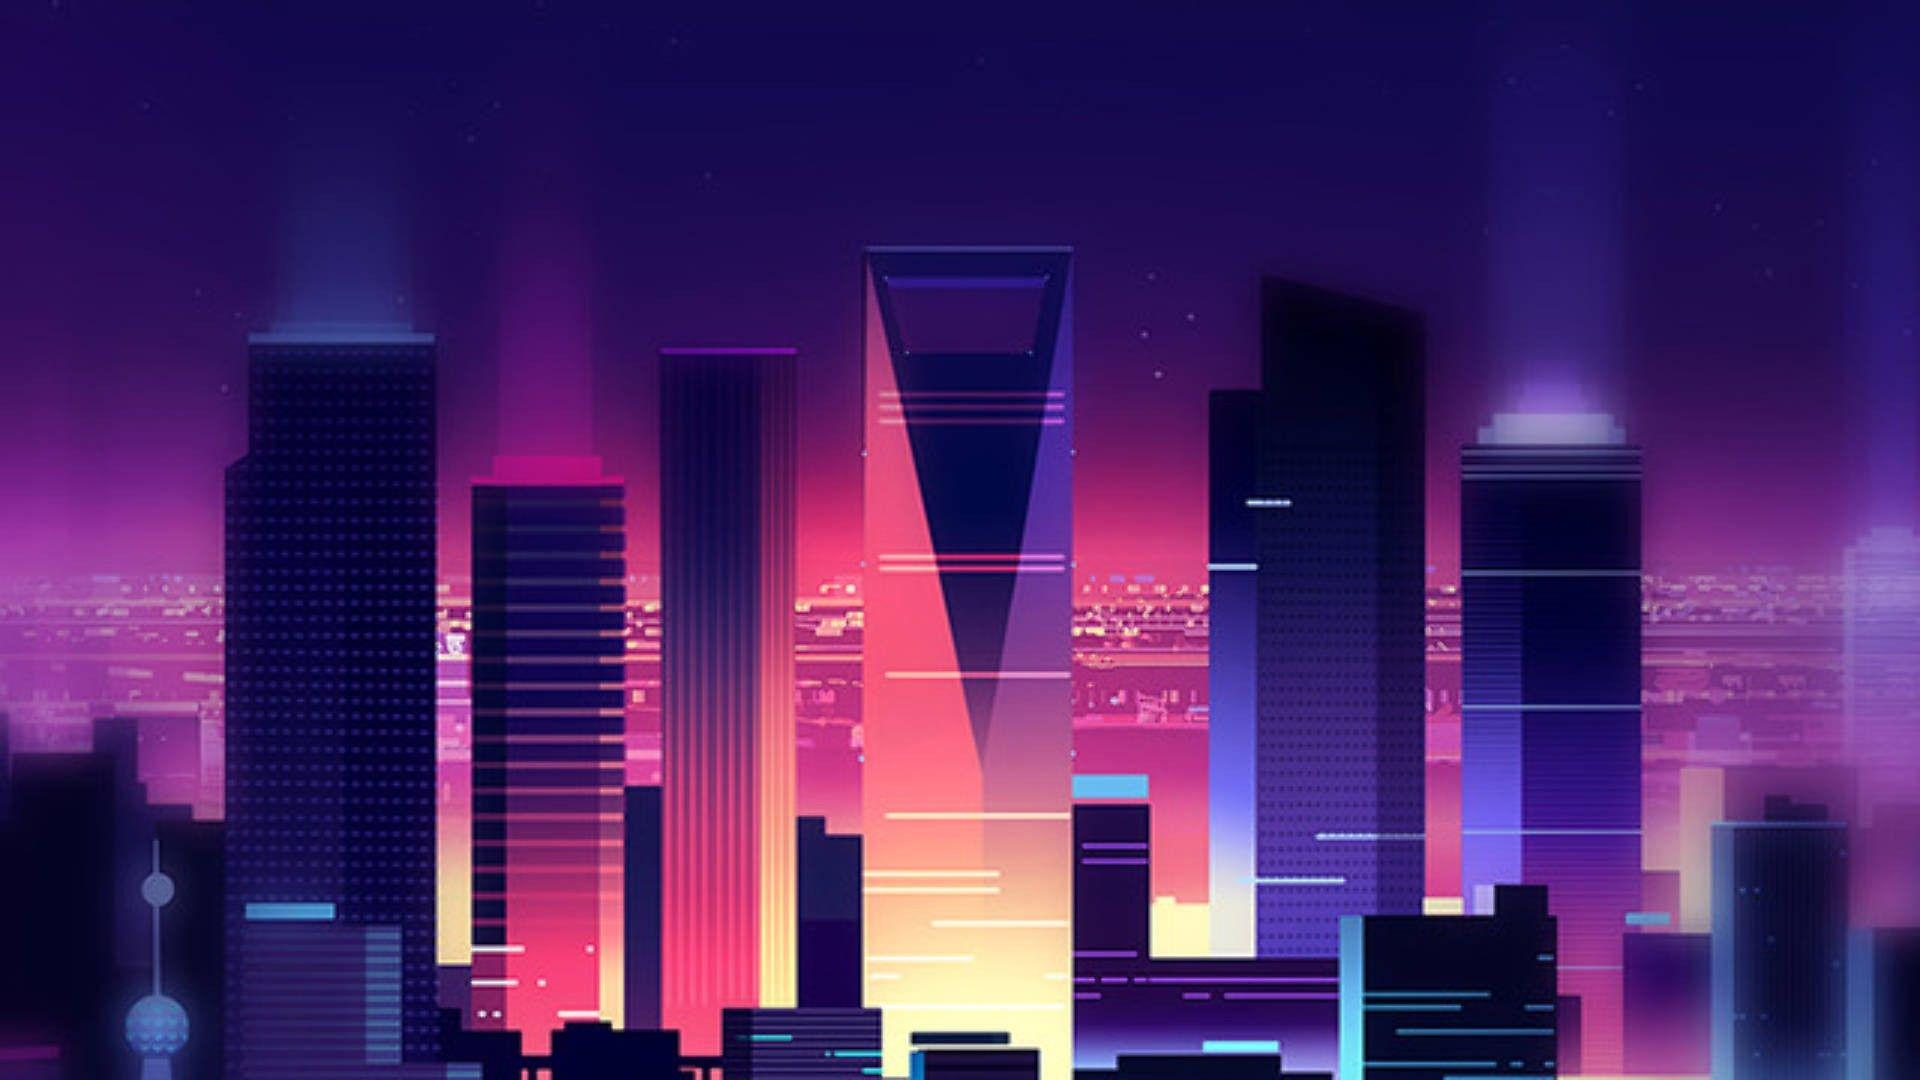 Synthwave wallpapers ·① Download free High Resolution wallpapers